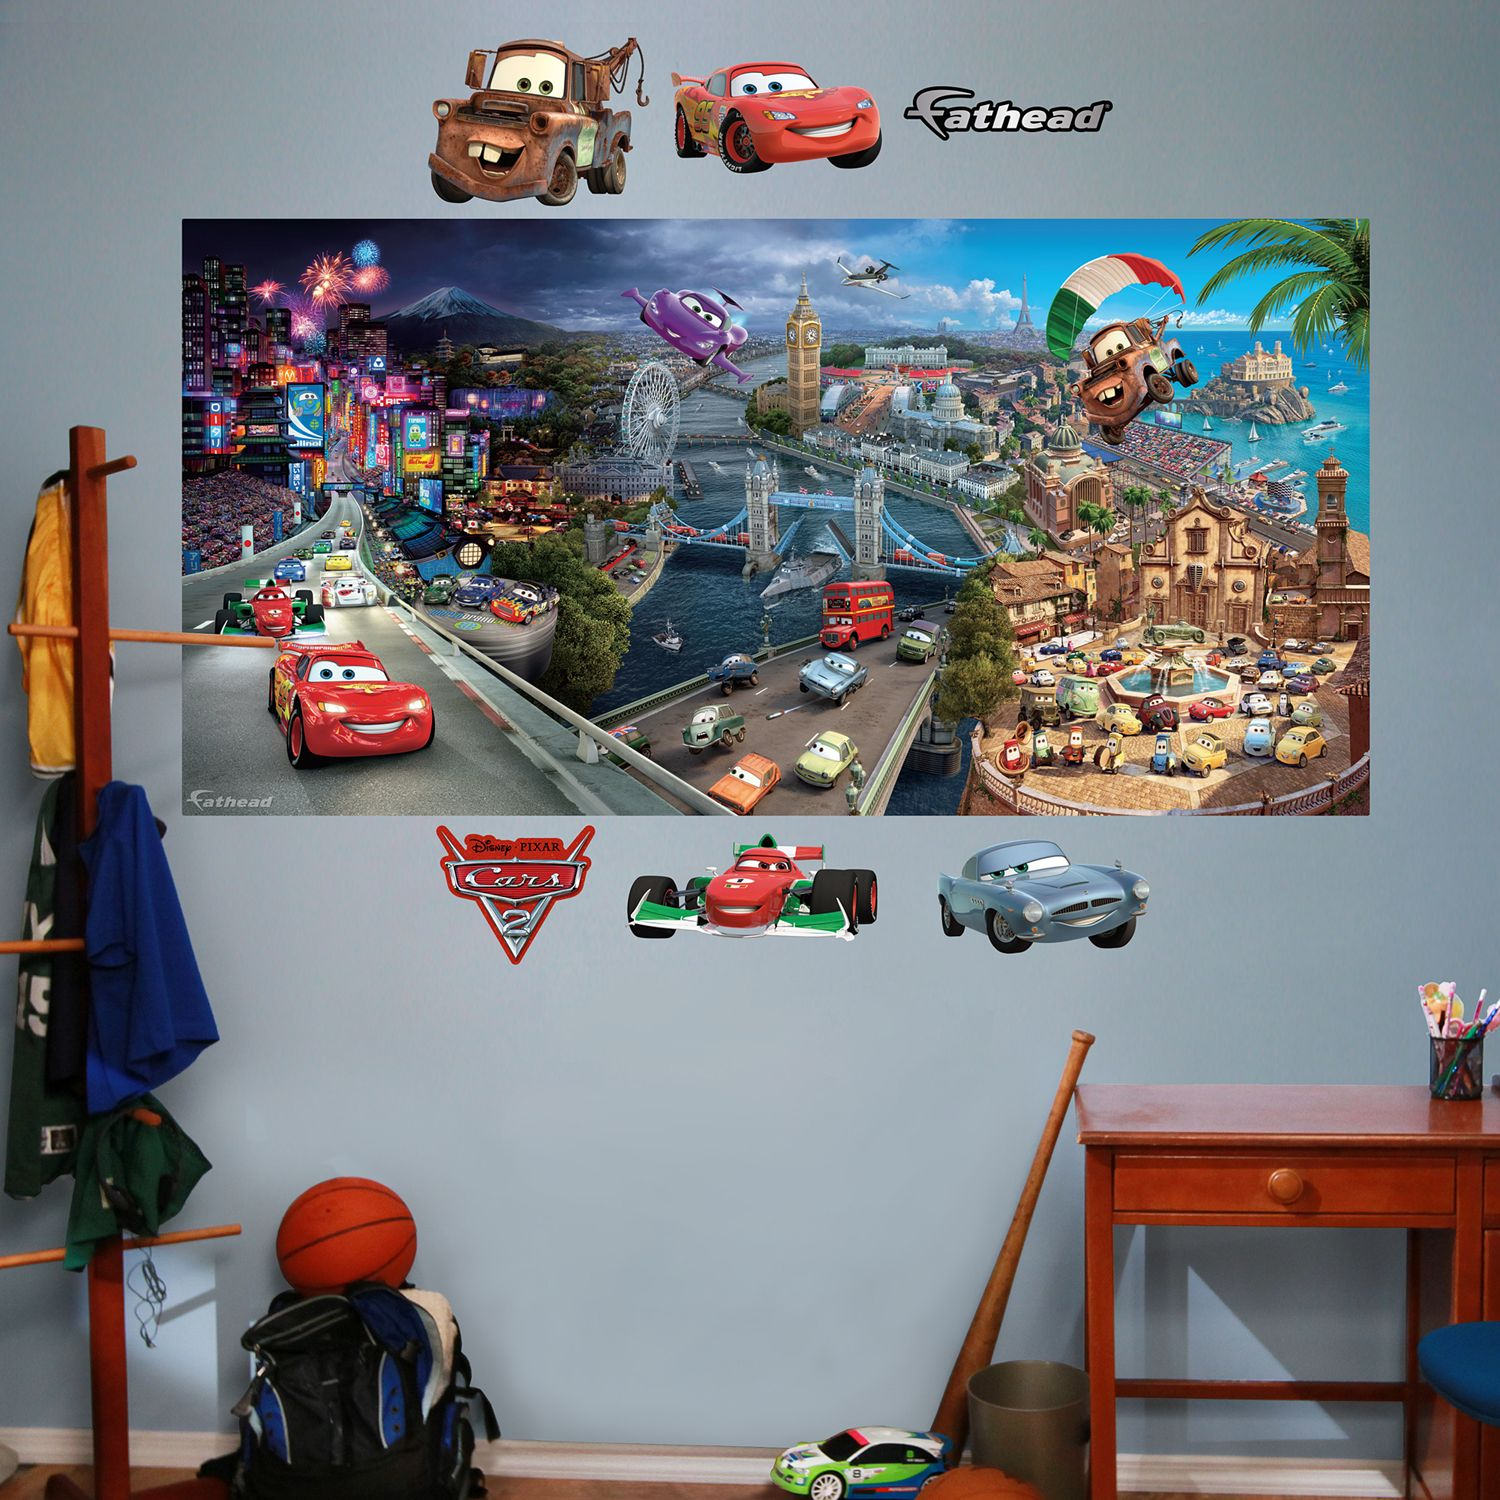 Disney / Pixar Cars 2 Mural Wall Decals By Fathead Part 28